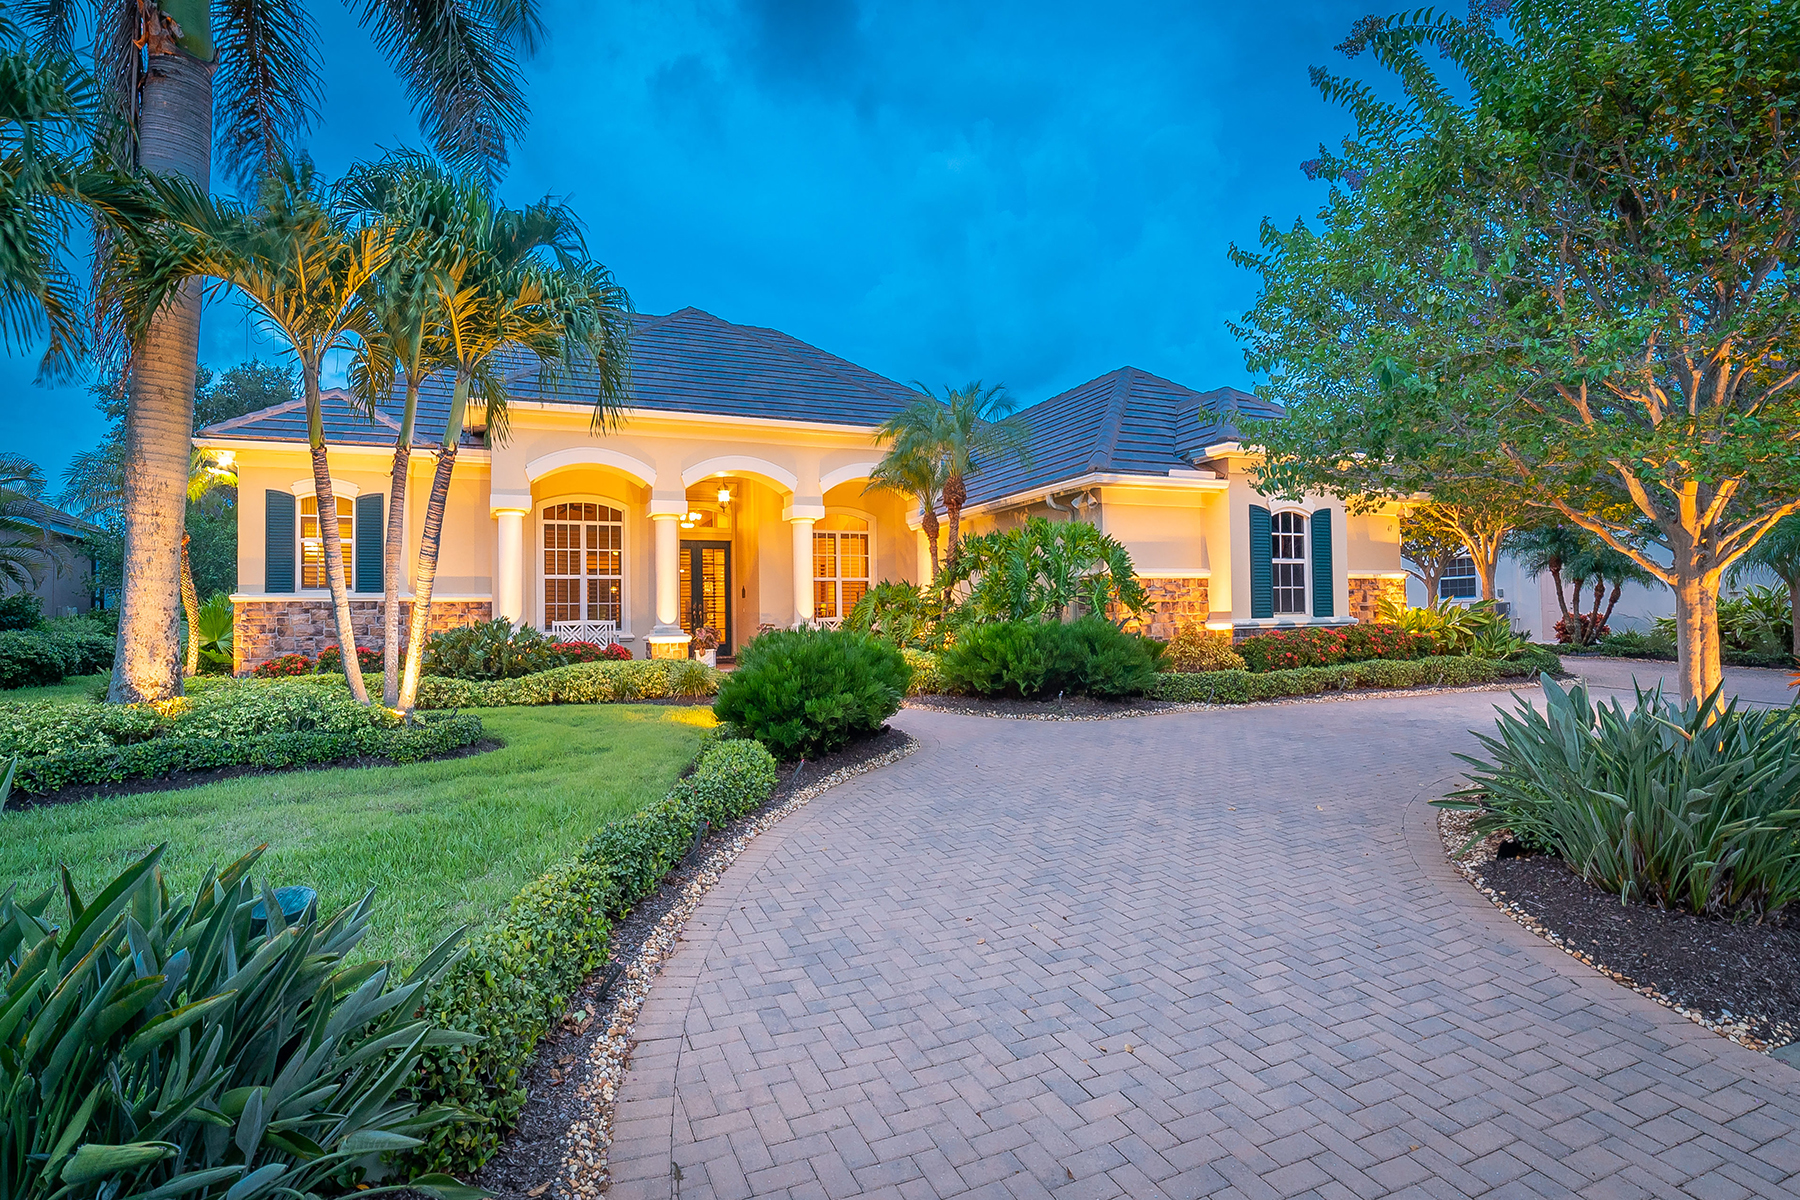 Single Family Homes for Sale at BOCA ROYALE 47 Grande Fairway Englewood, Florida 34223 United States